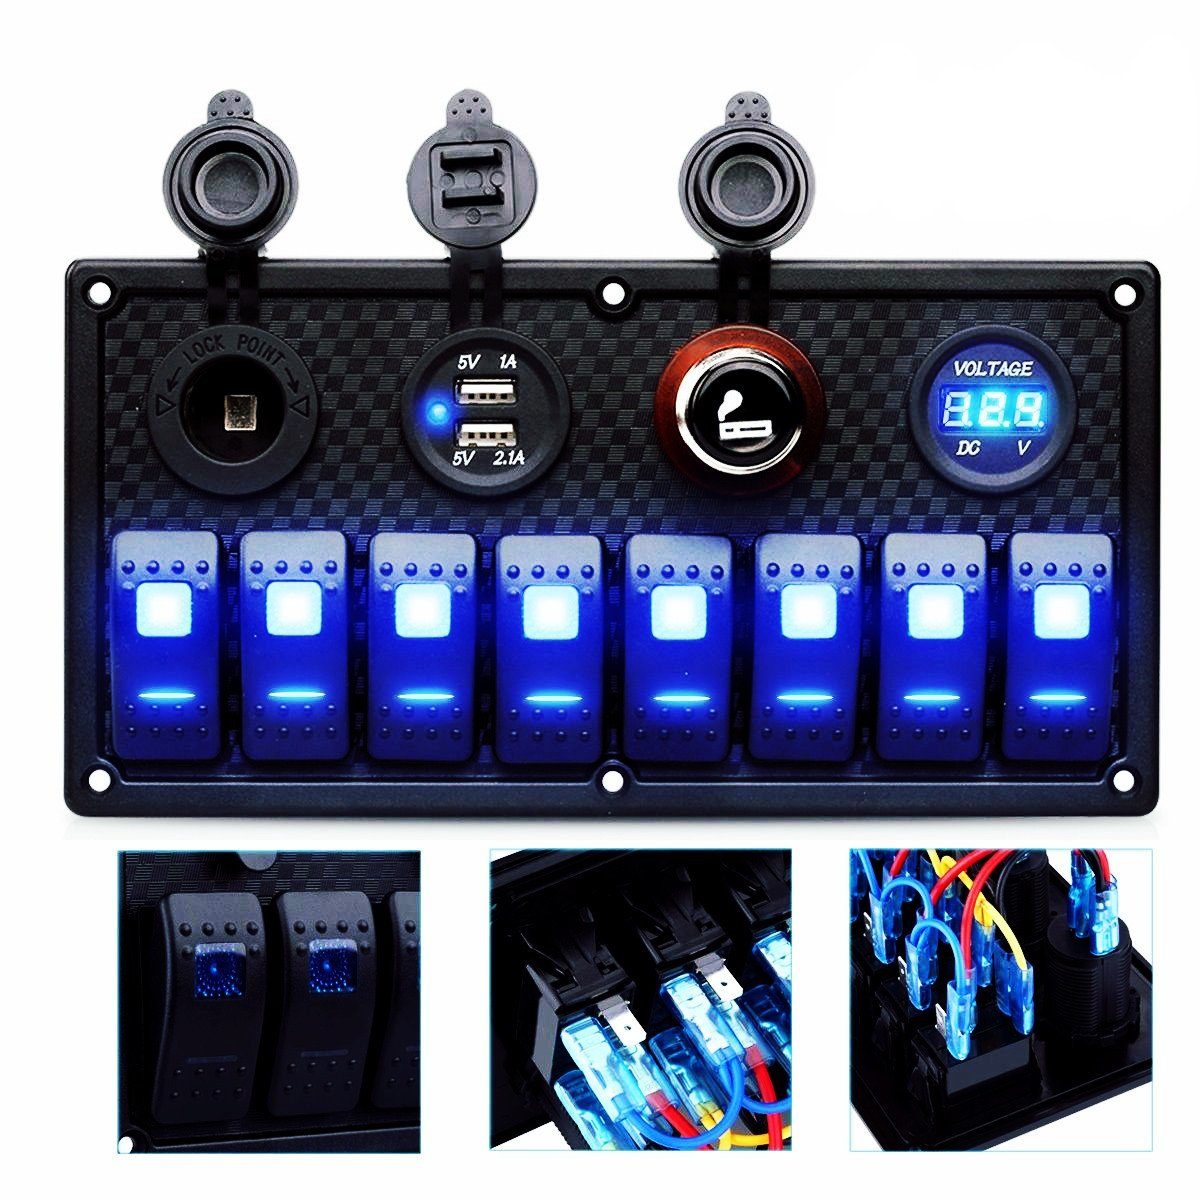 DCFlat 4 Gang / 6 Gang / 8 Gang Circuit LED Car Marine Boat Rocker Switch Panel Dual USB Waterproof Power Socket Breaker Voltmeter Overload Protection (8 Gang) by DCFlat